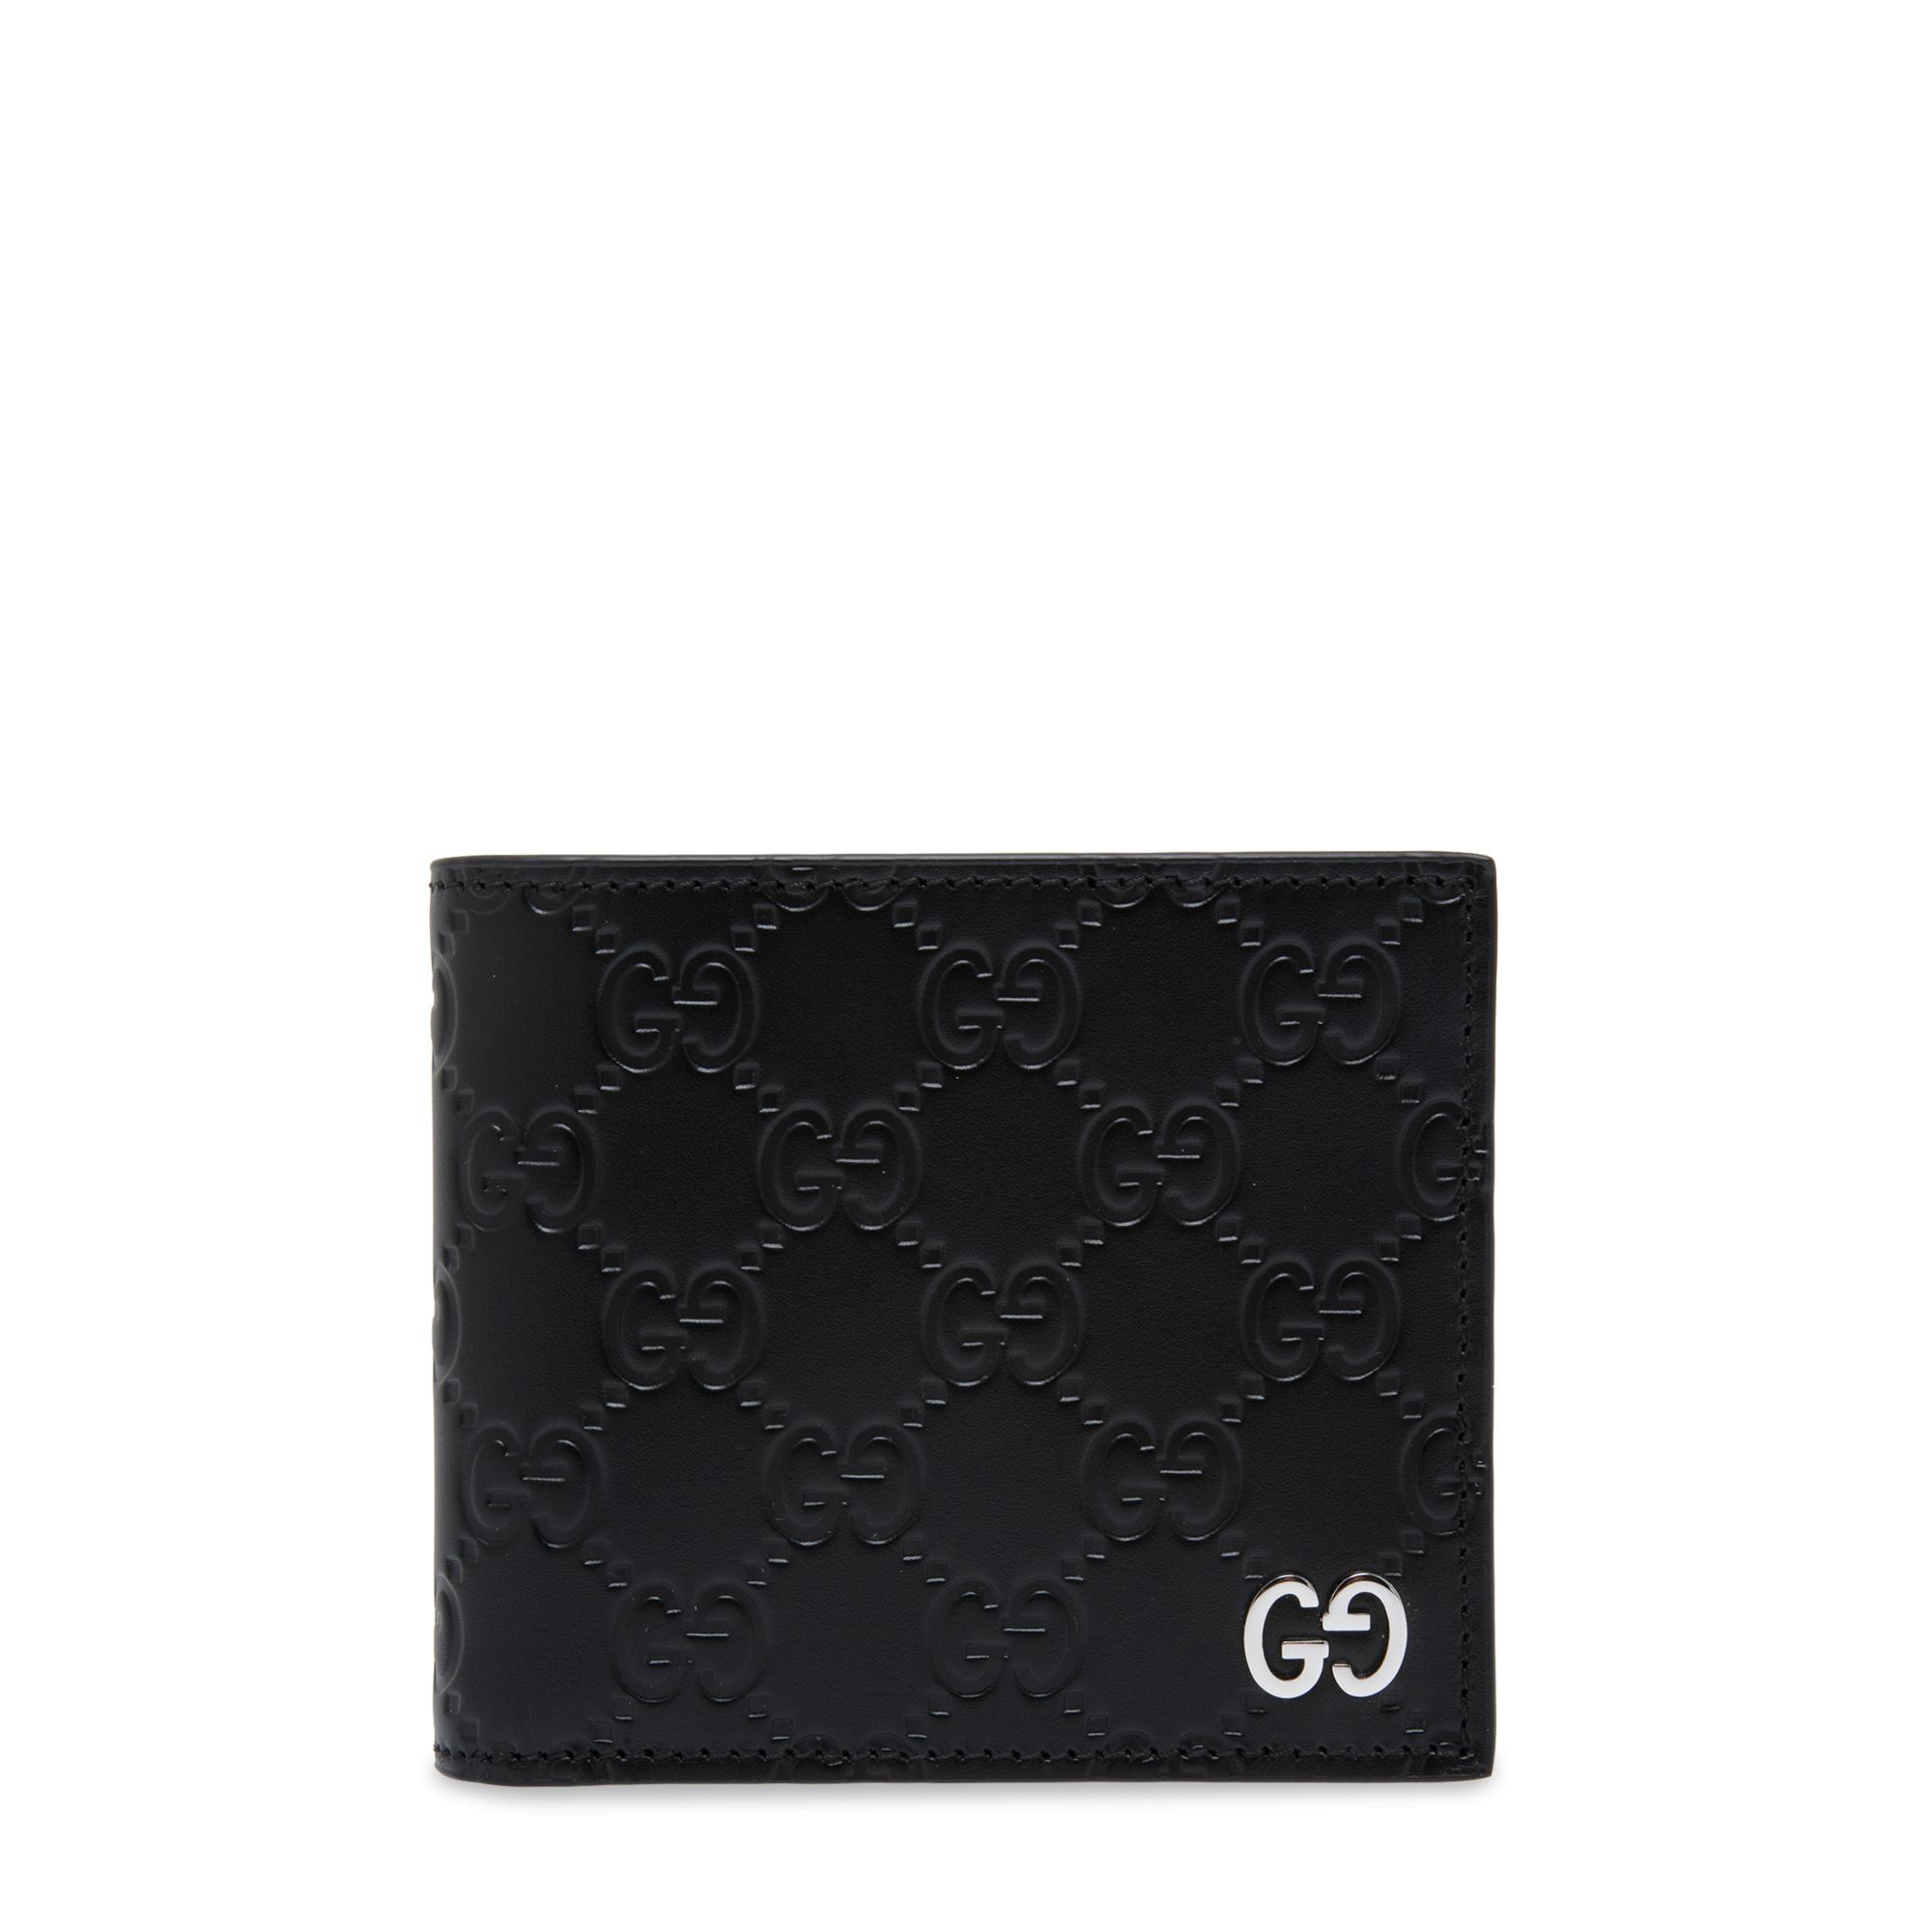 Signature coin wallet